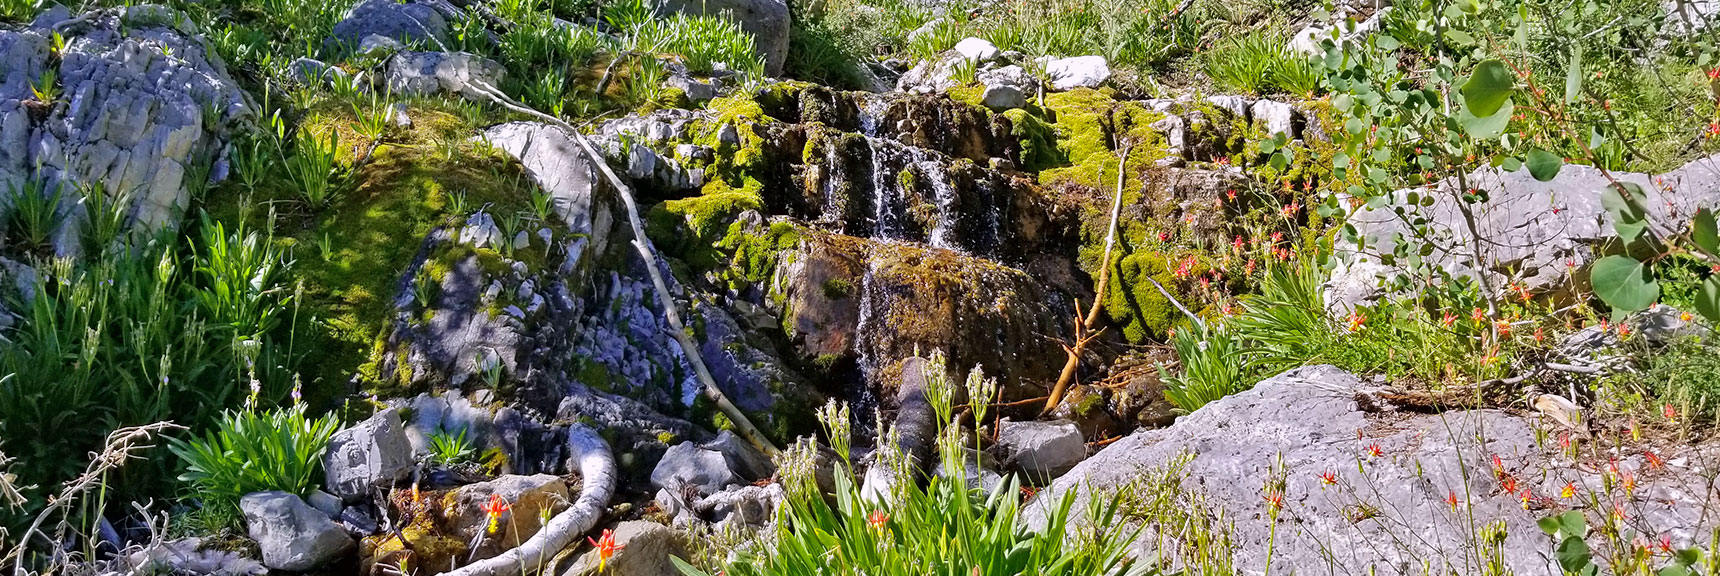 Canyon Spring Waterfall Cascading Over Moss Covered Ledge | Cathedral Rock to South Ridge Kyle Canyon Summit, Nevada